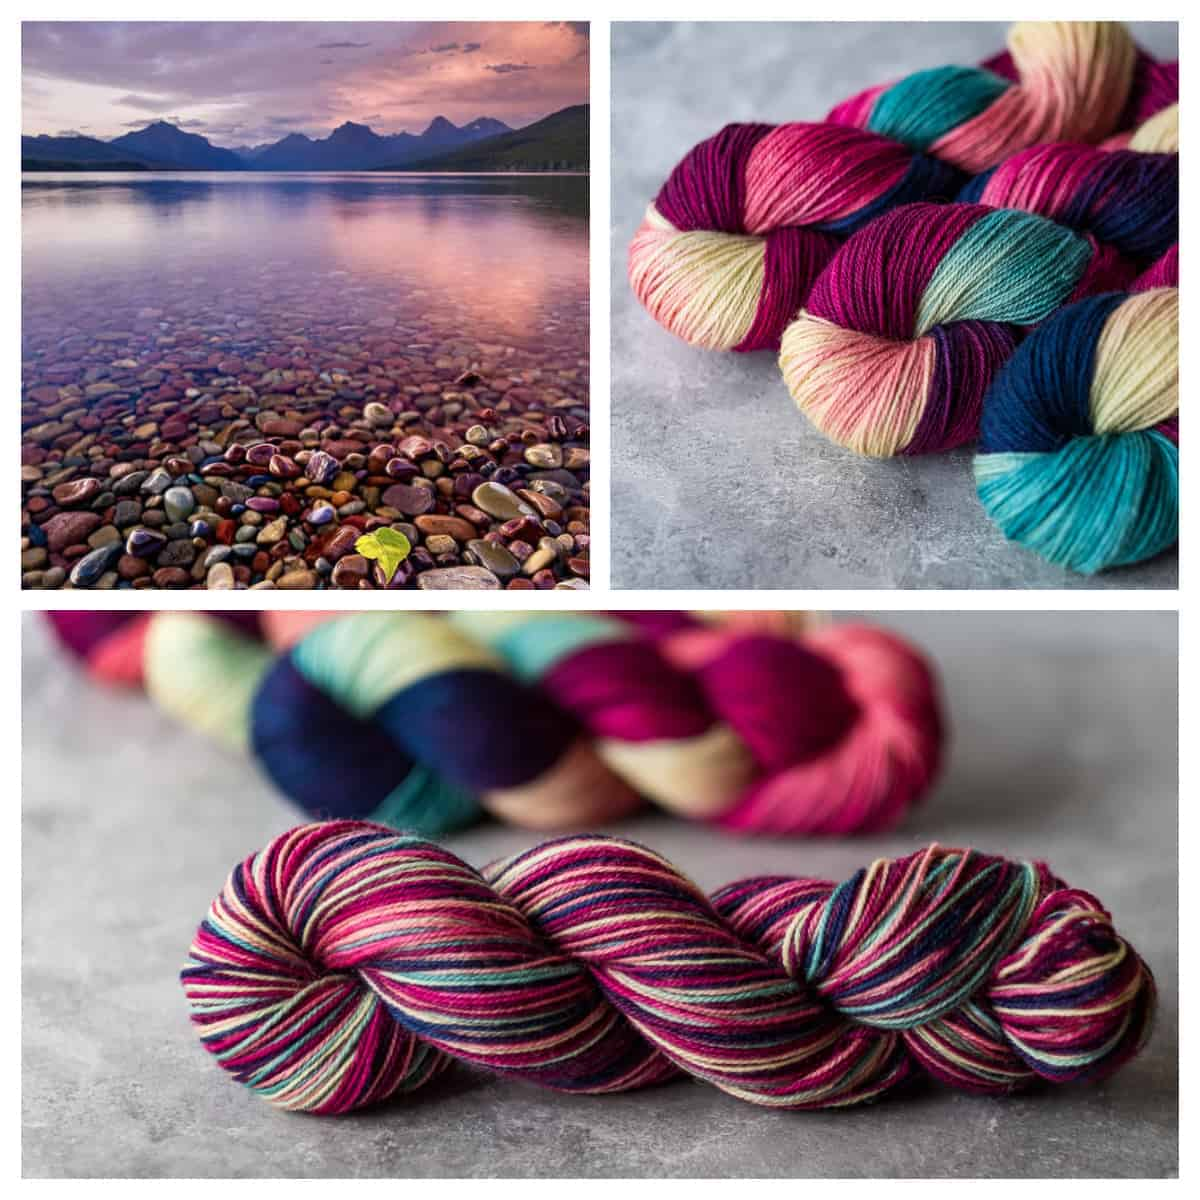 A collage with a lake and pink and teal yarn.